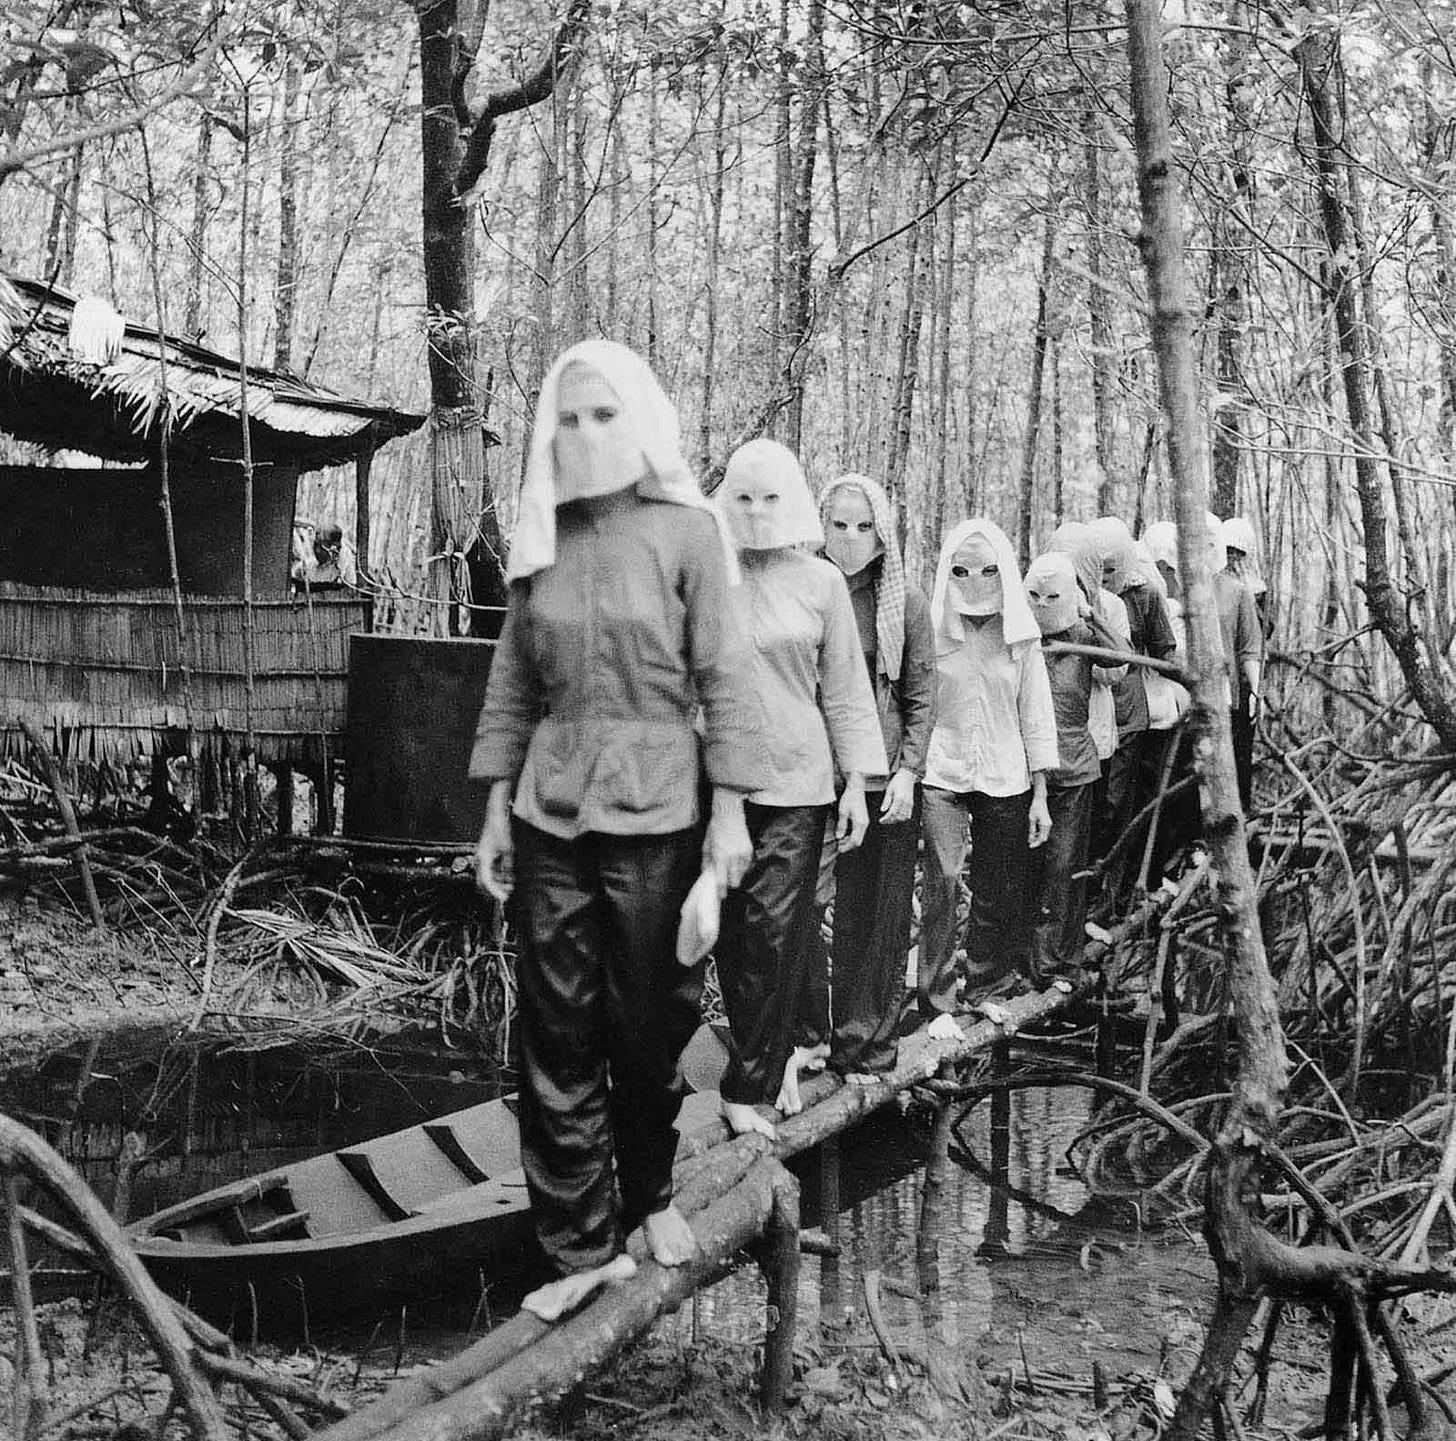 """Activists meet in the Nam Can forest, wearing masks to hide their identities from one another in case of capture and interrogation. From here in the mangrove swamps of the Mekong Delta, forwarding images to the North was difficult. """"Sometimes the photos were lost or confiscated on the way,"""" said the photographer. 1972. (Photo by Vo Anh Khanh)."""